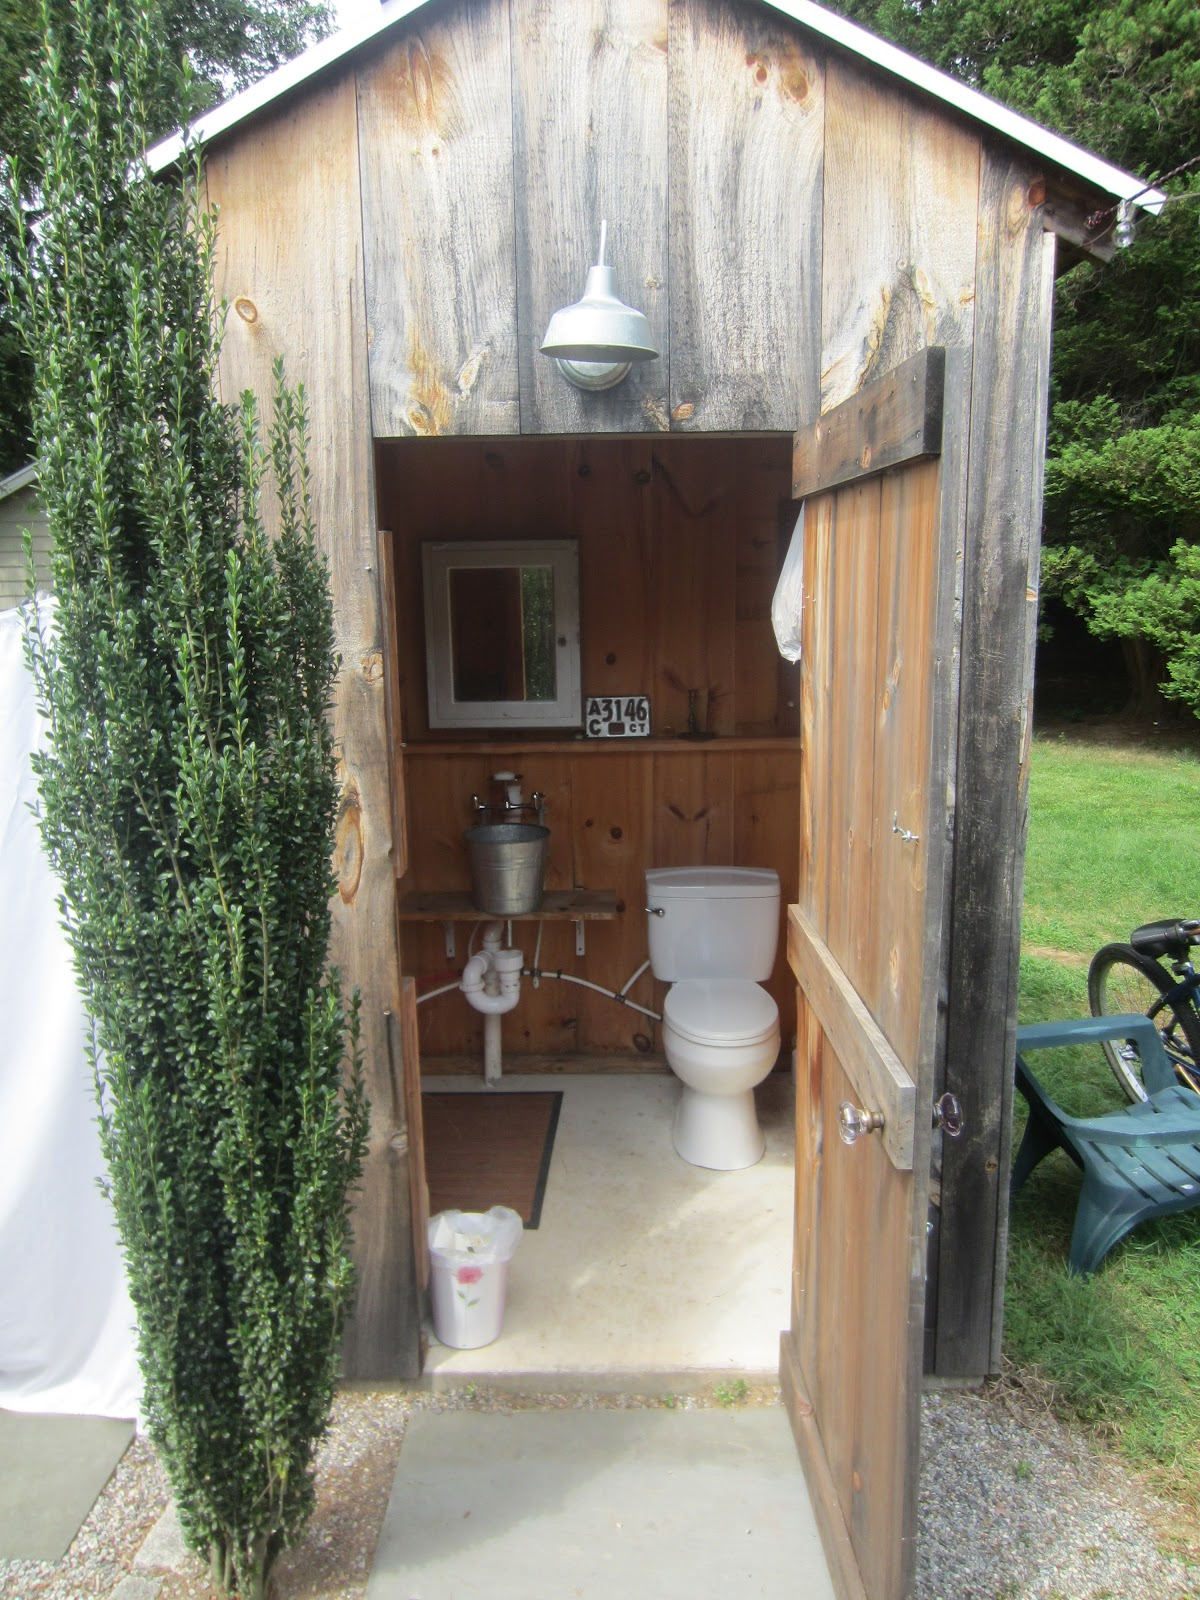 Relaxshackscom THE BEECH TREE COTTAGES A Tiny Housecottage - Outhouse bathroom